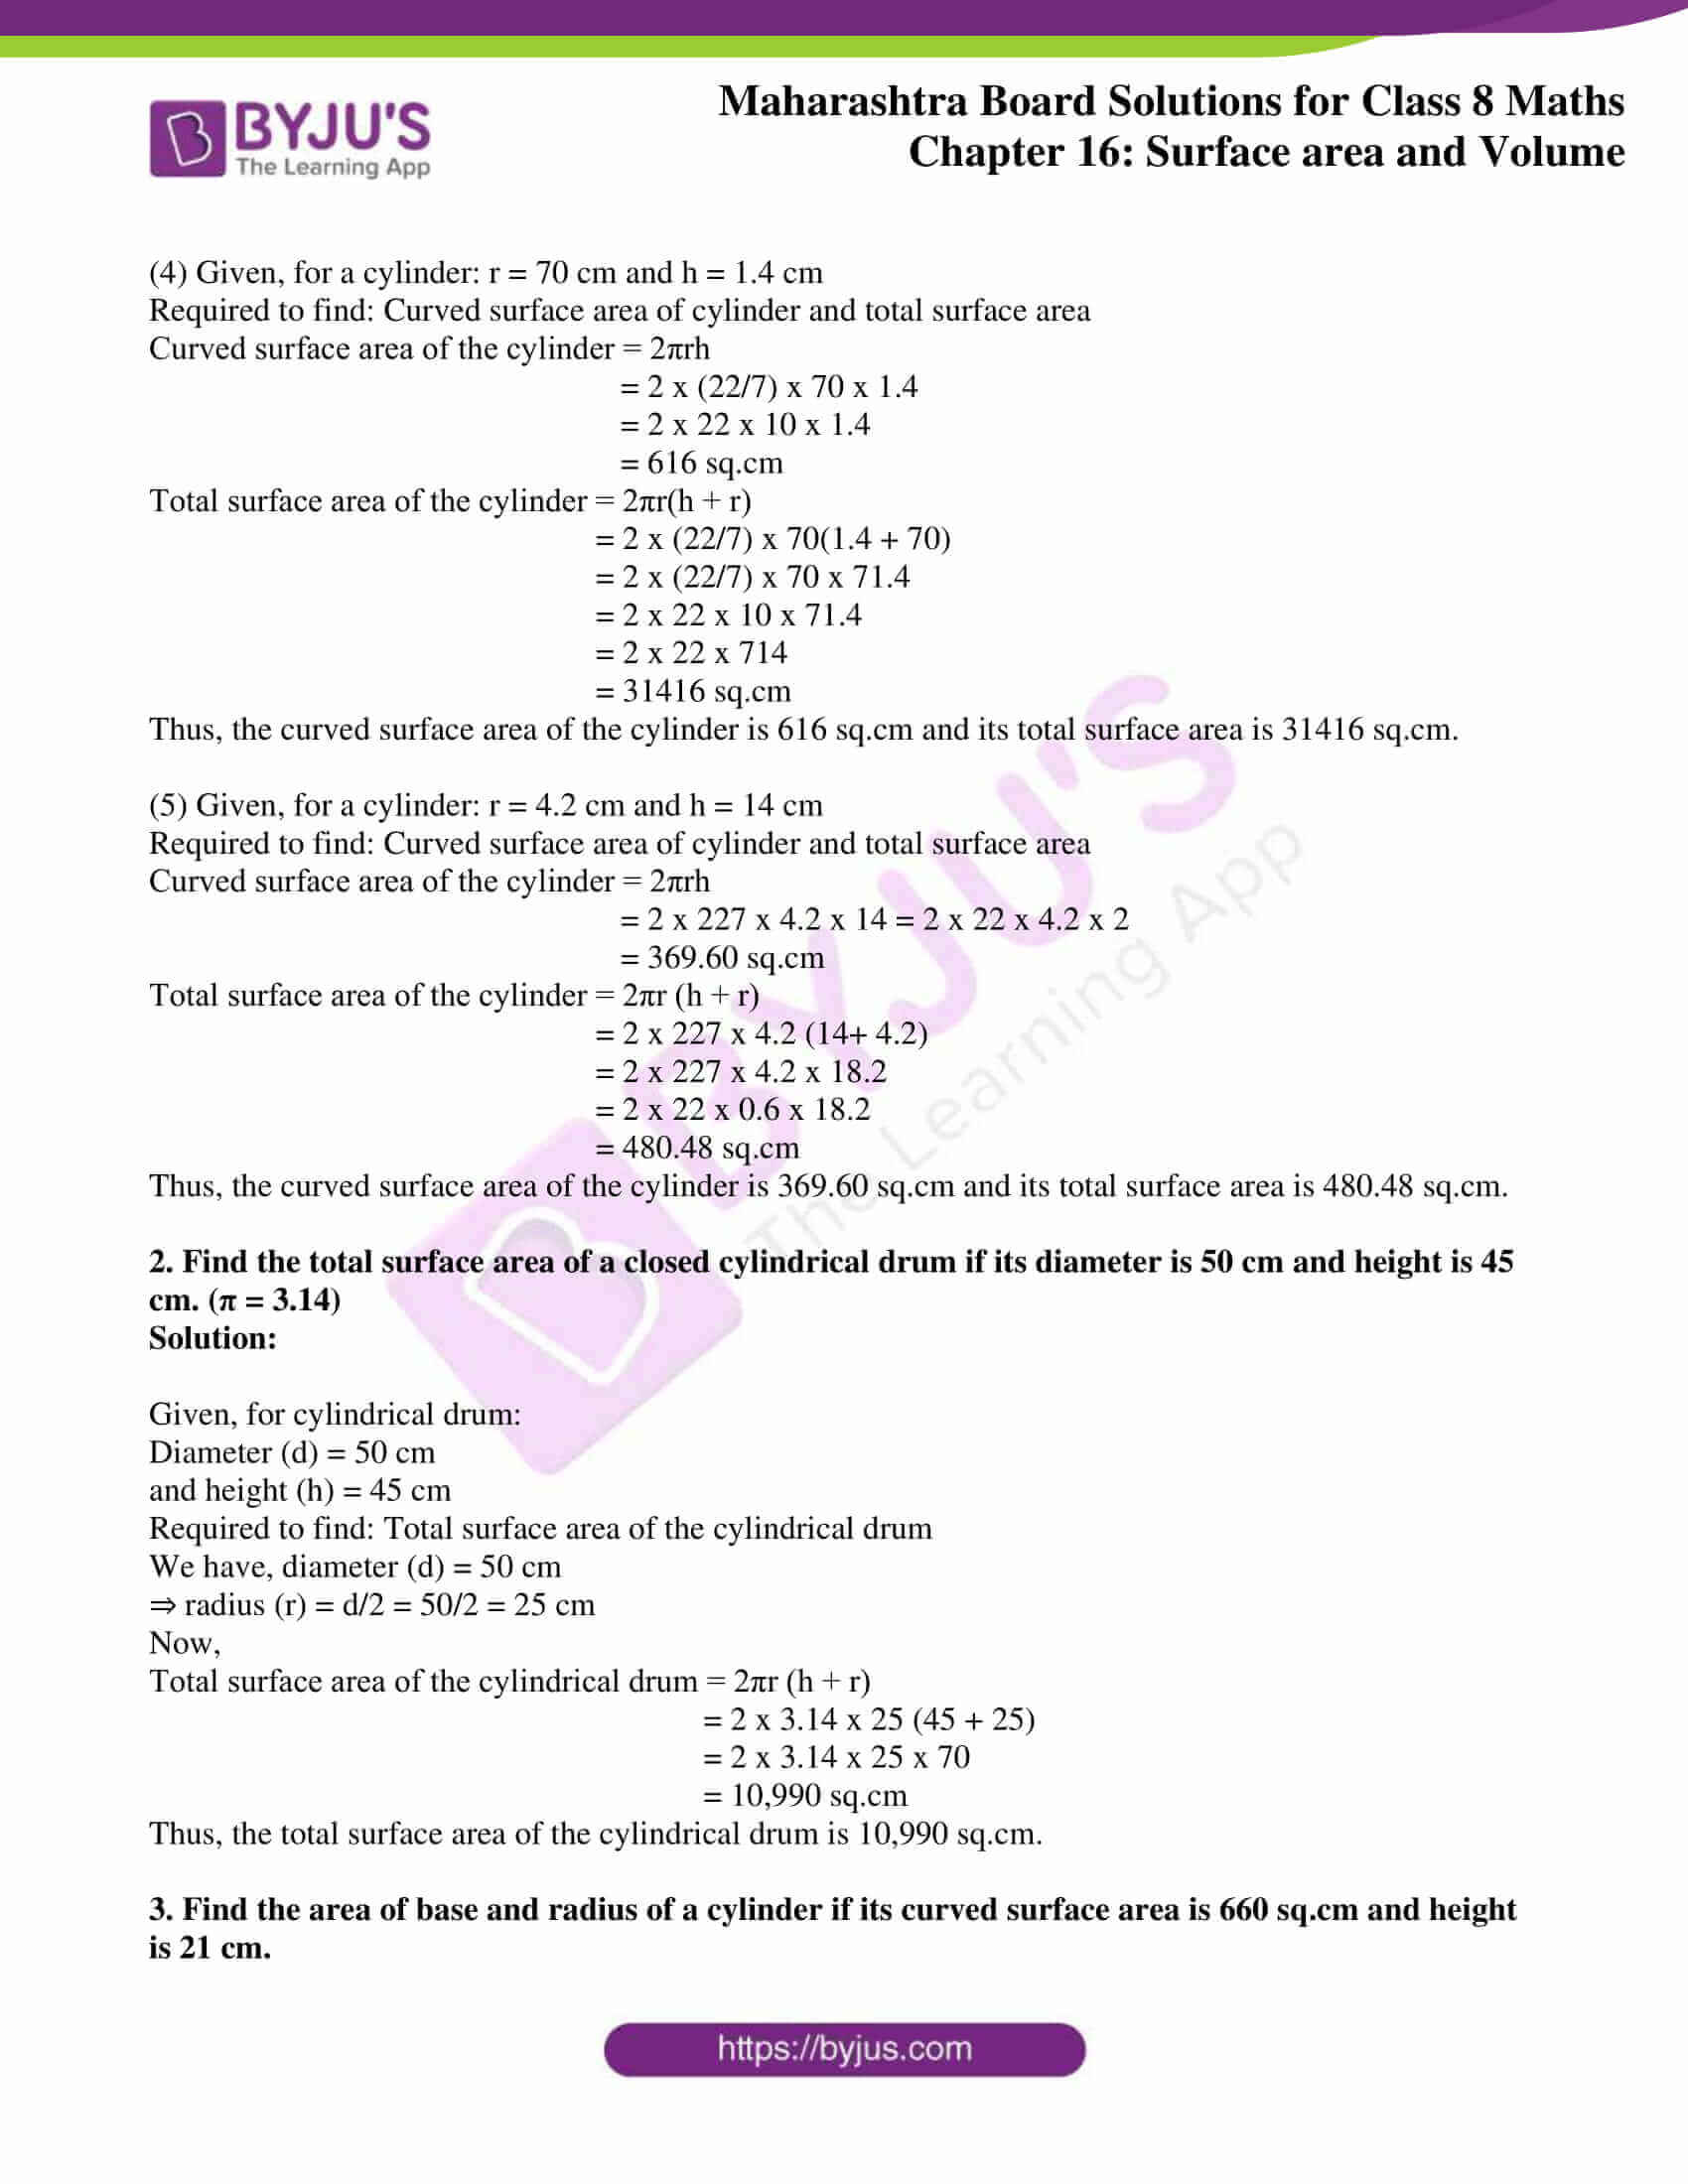 msbshse sol for class 8 maths chapter 16 4